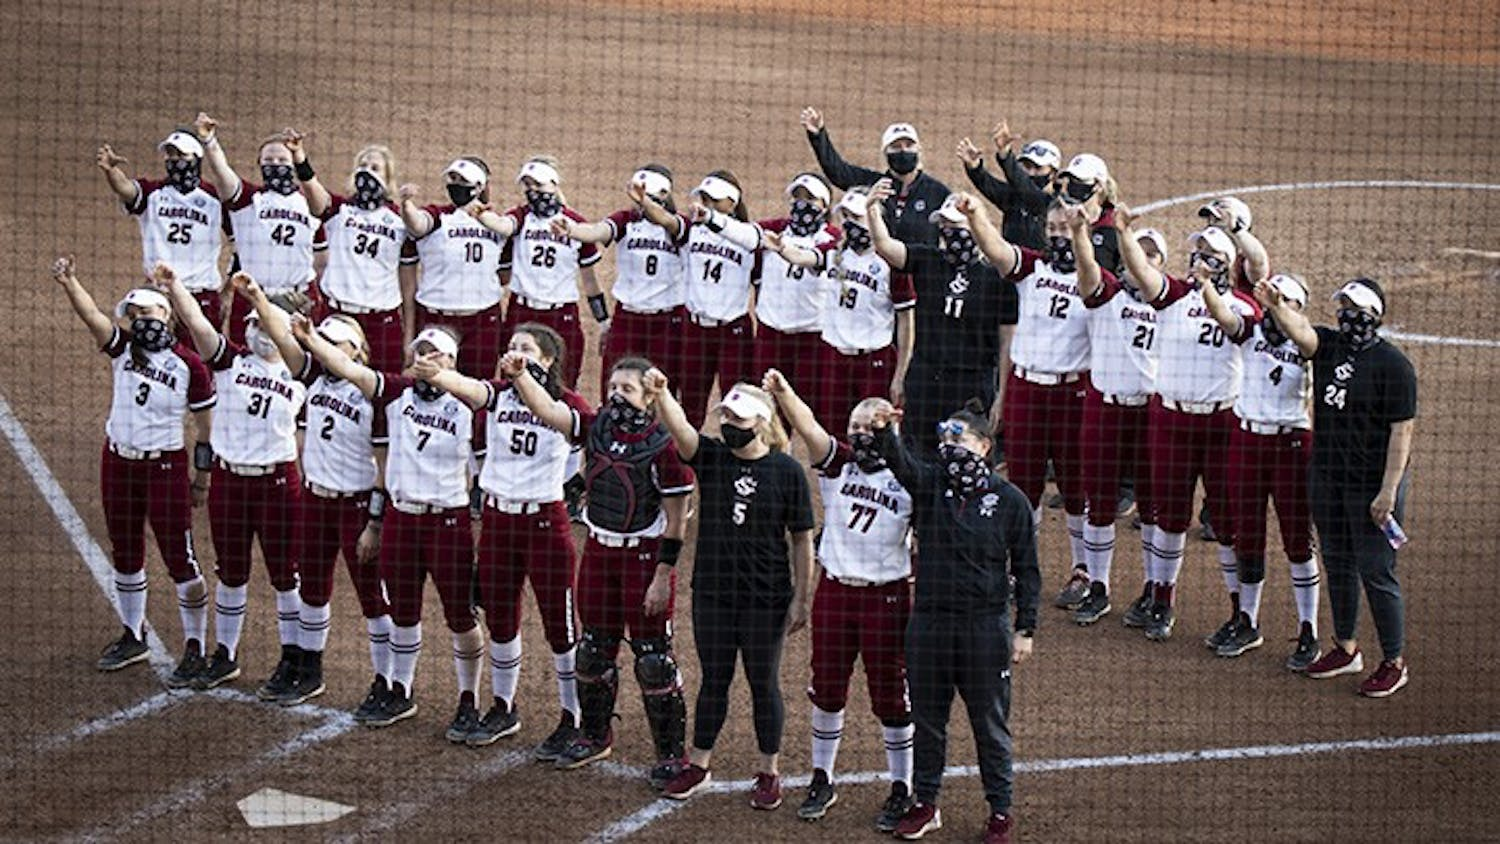 The Lady Gamecocks celebrate the mercy rule win against Coastal Carolina University. Final score of the second game in the doubleheader was 10-0 for the Lady Gamecocks.